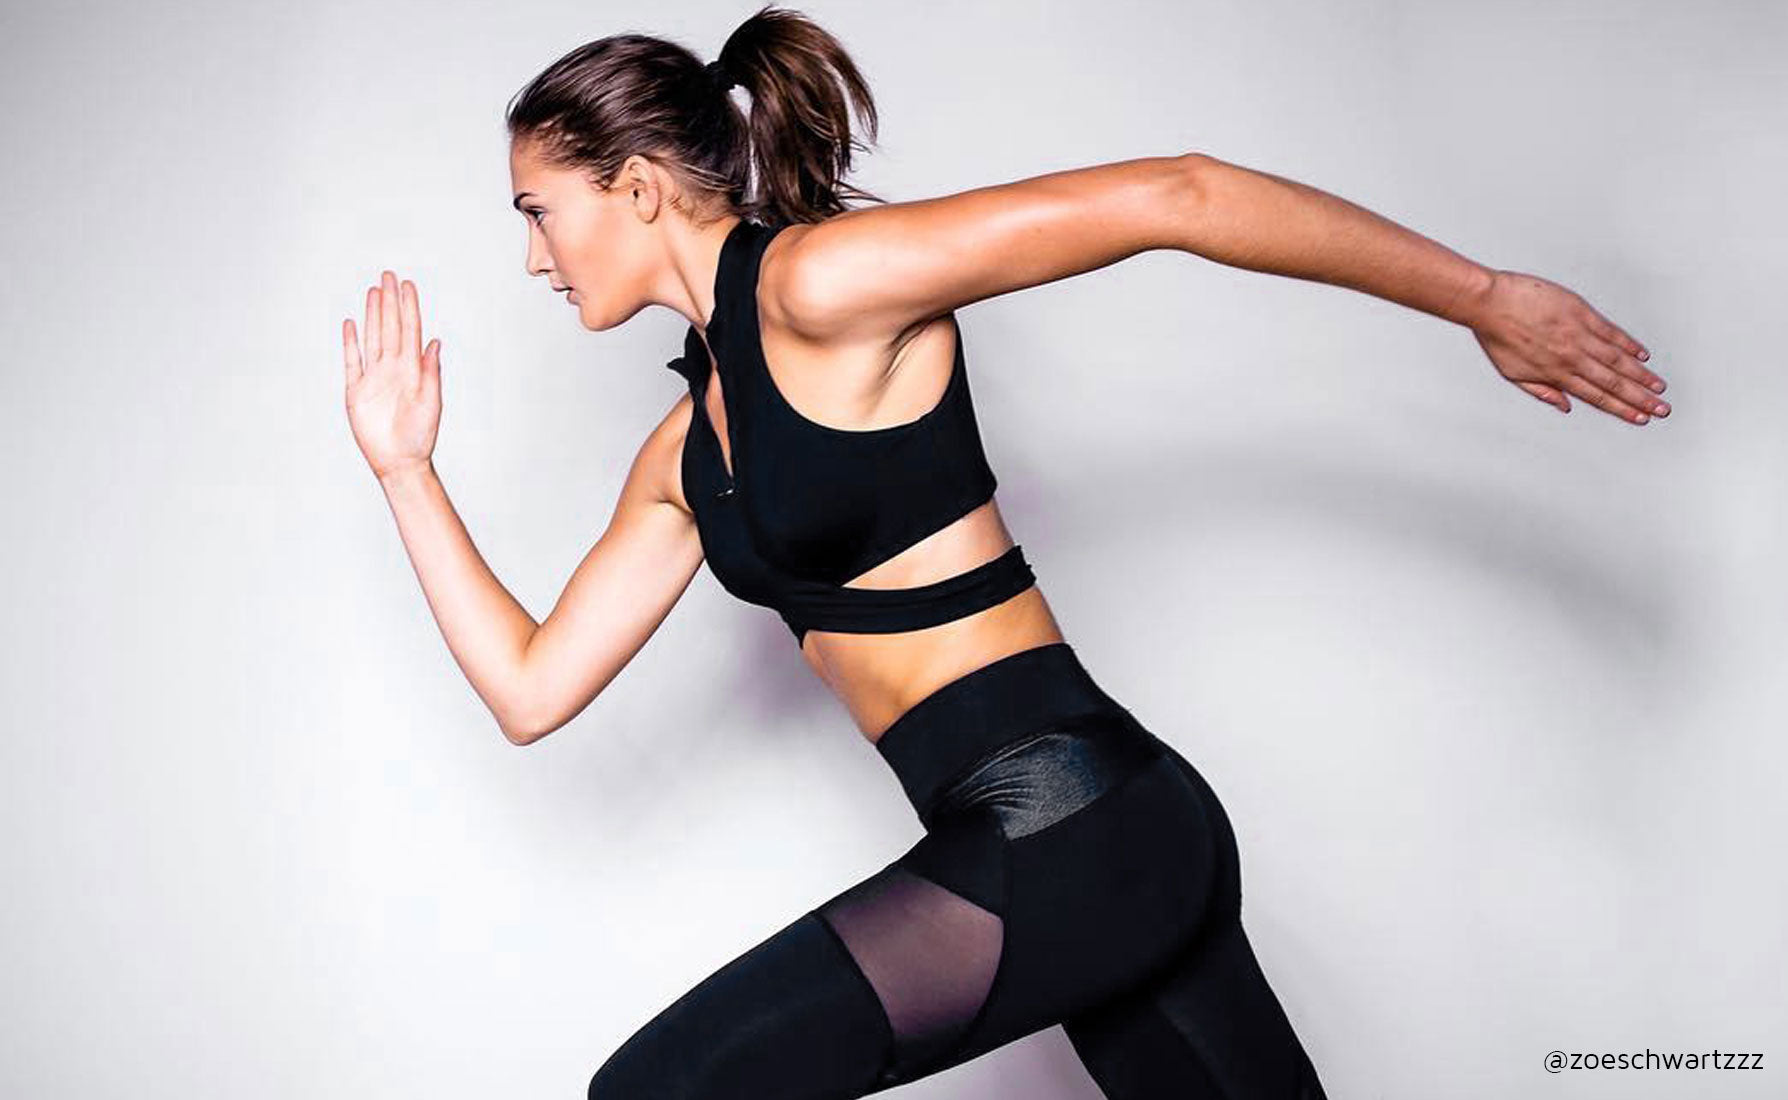 activewear for new year goals